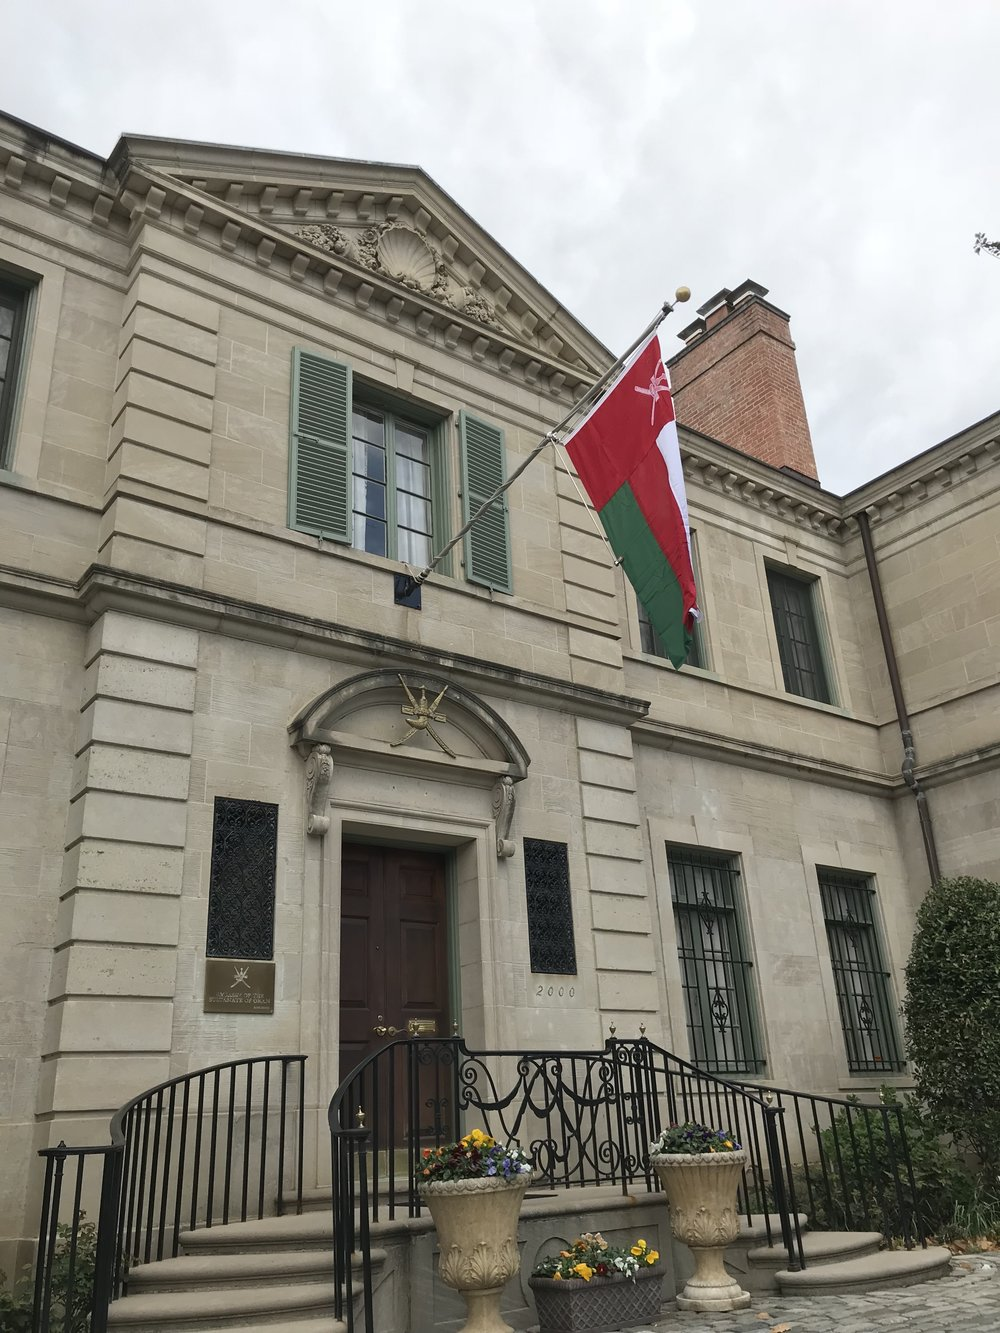 The Residence of the Ambassador of the Sultanate of Oman.